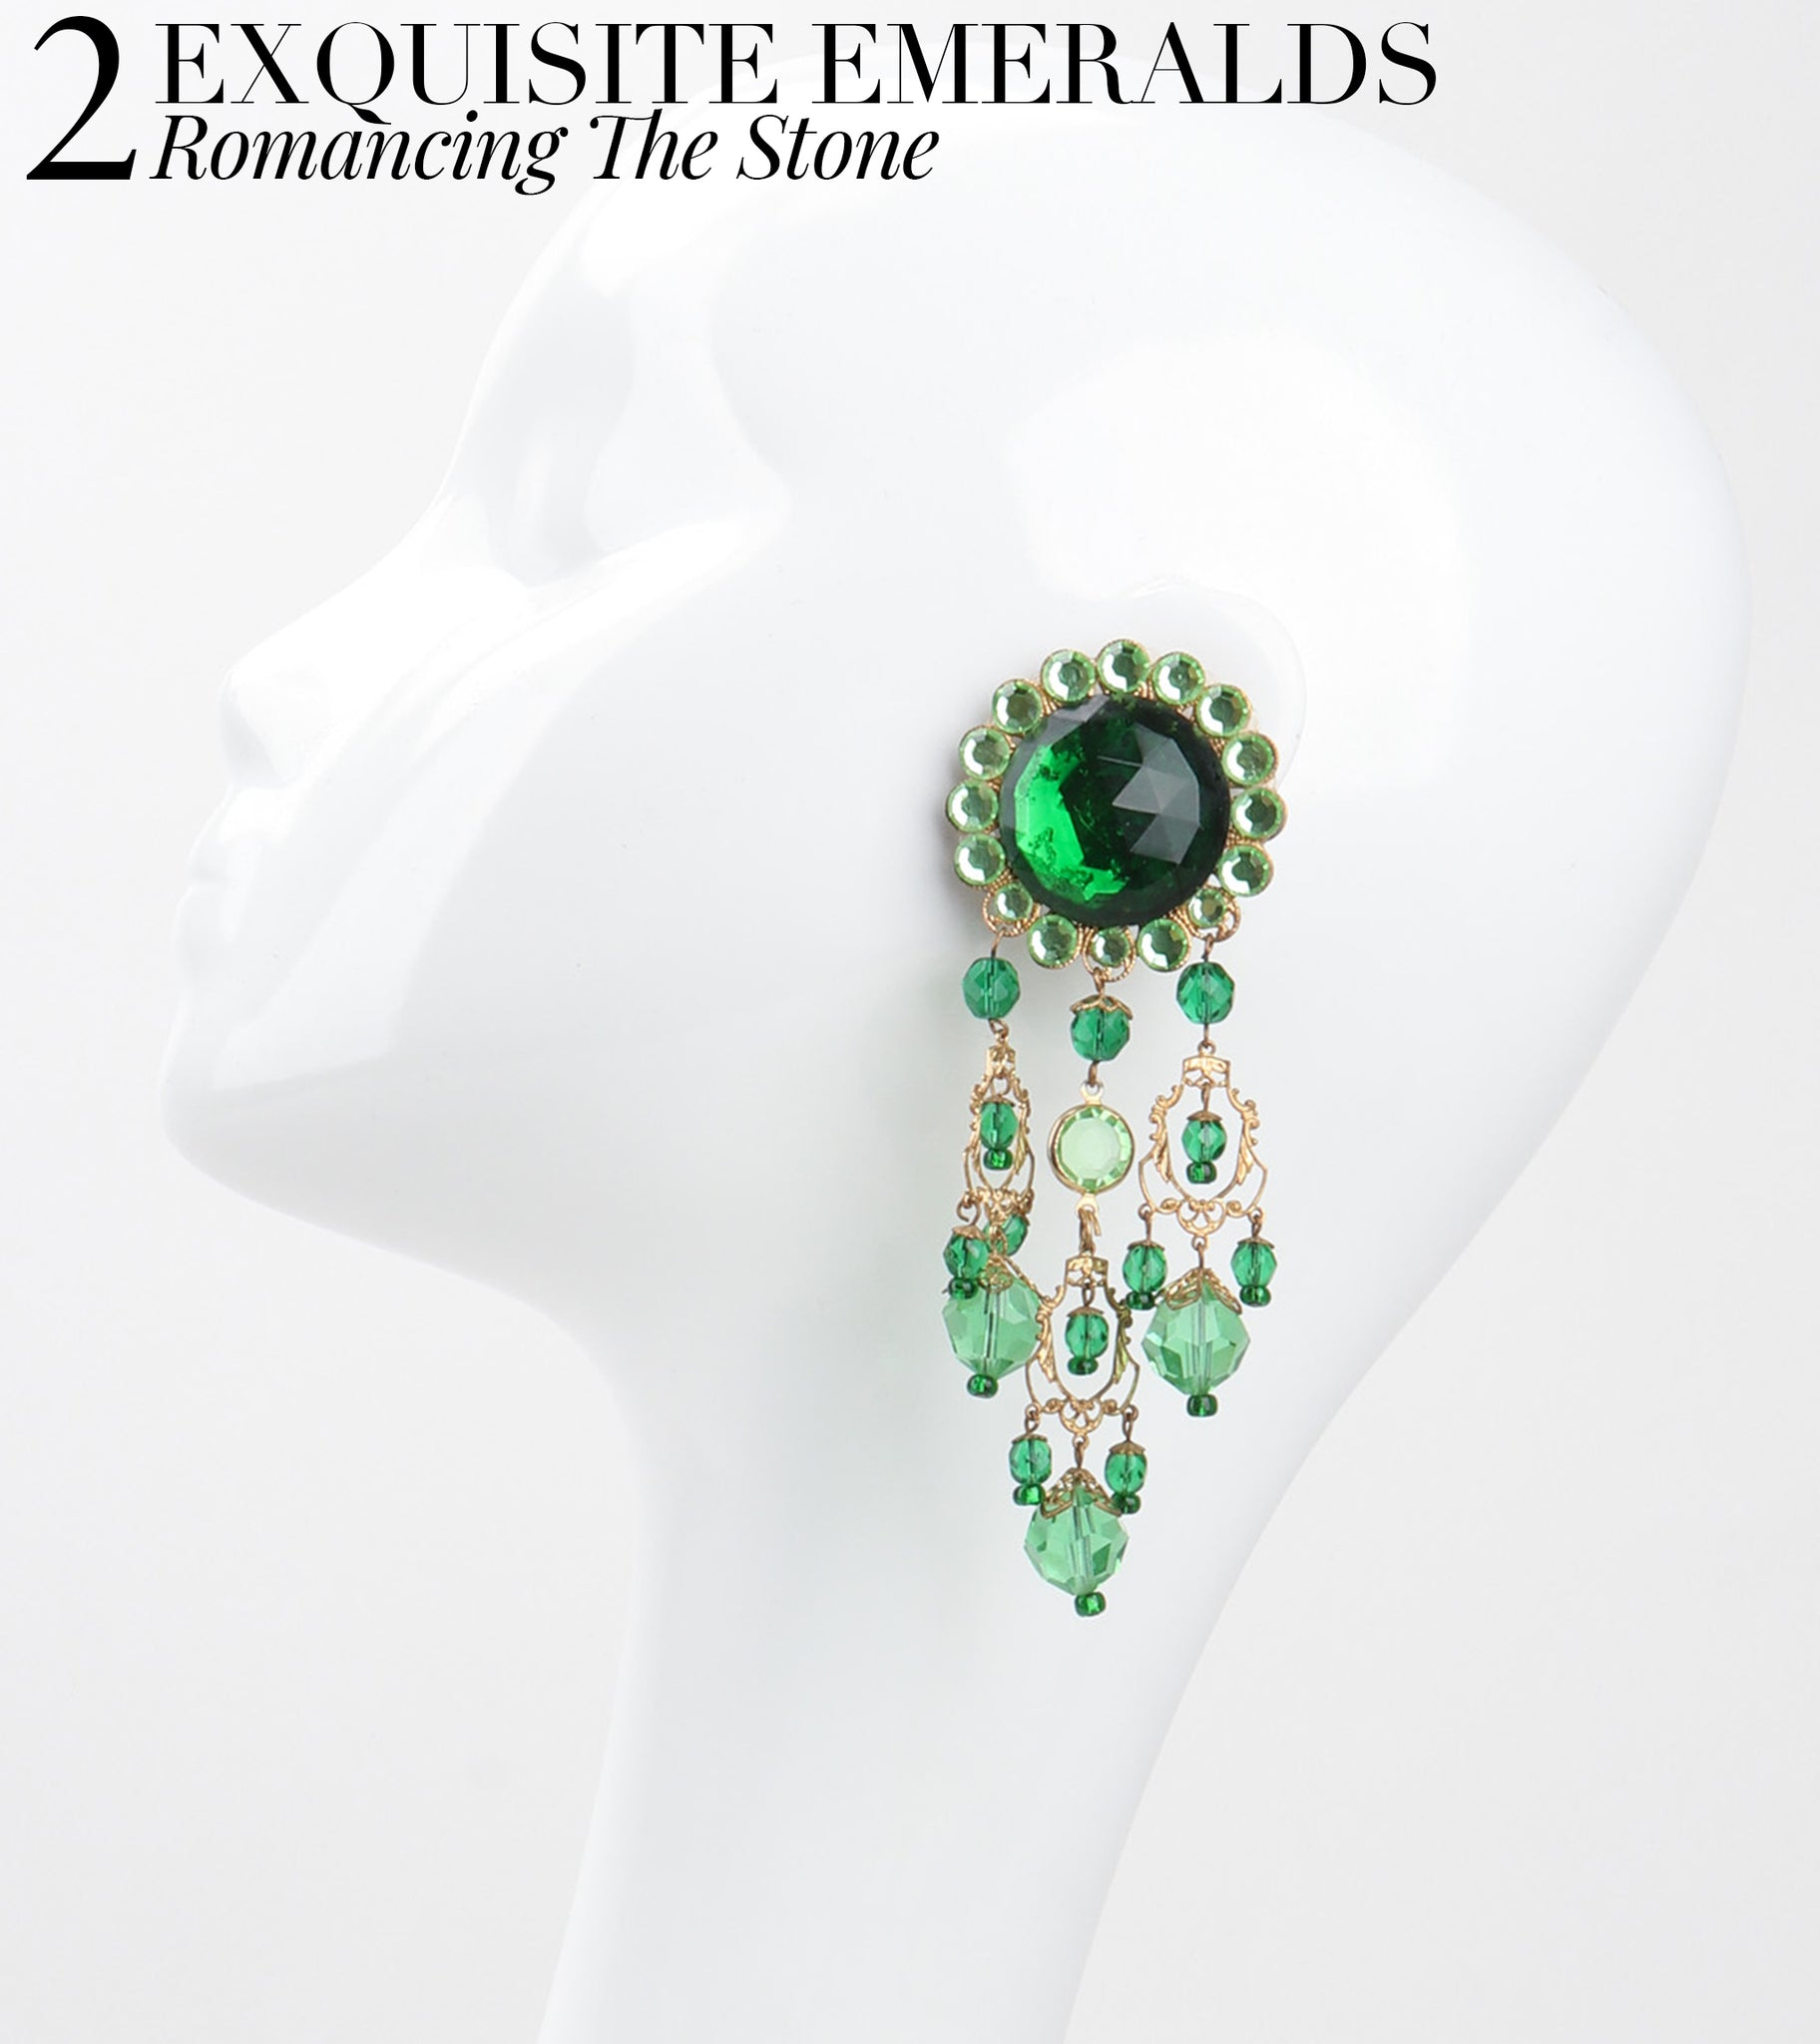 RECESS Los Angeles Vintage Dress Code Statement Earring Exquisite Emeralds Romancing The Stone Chandelier